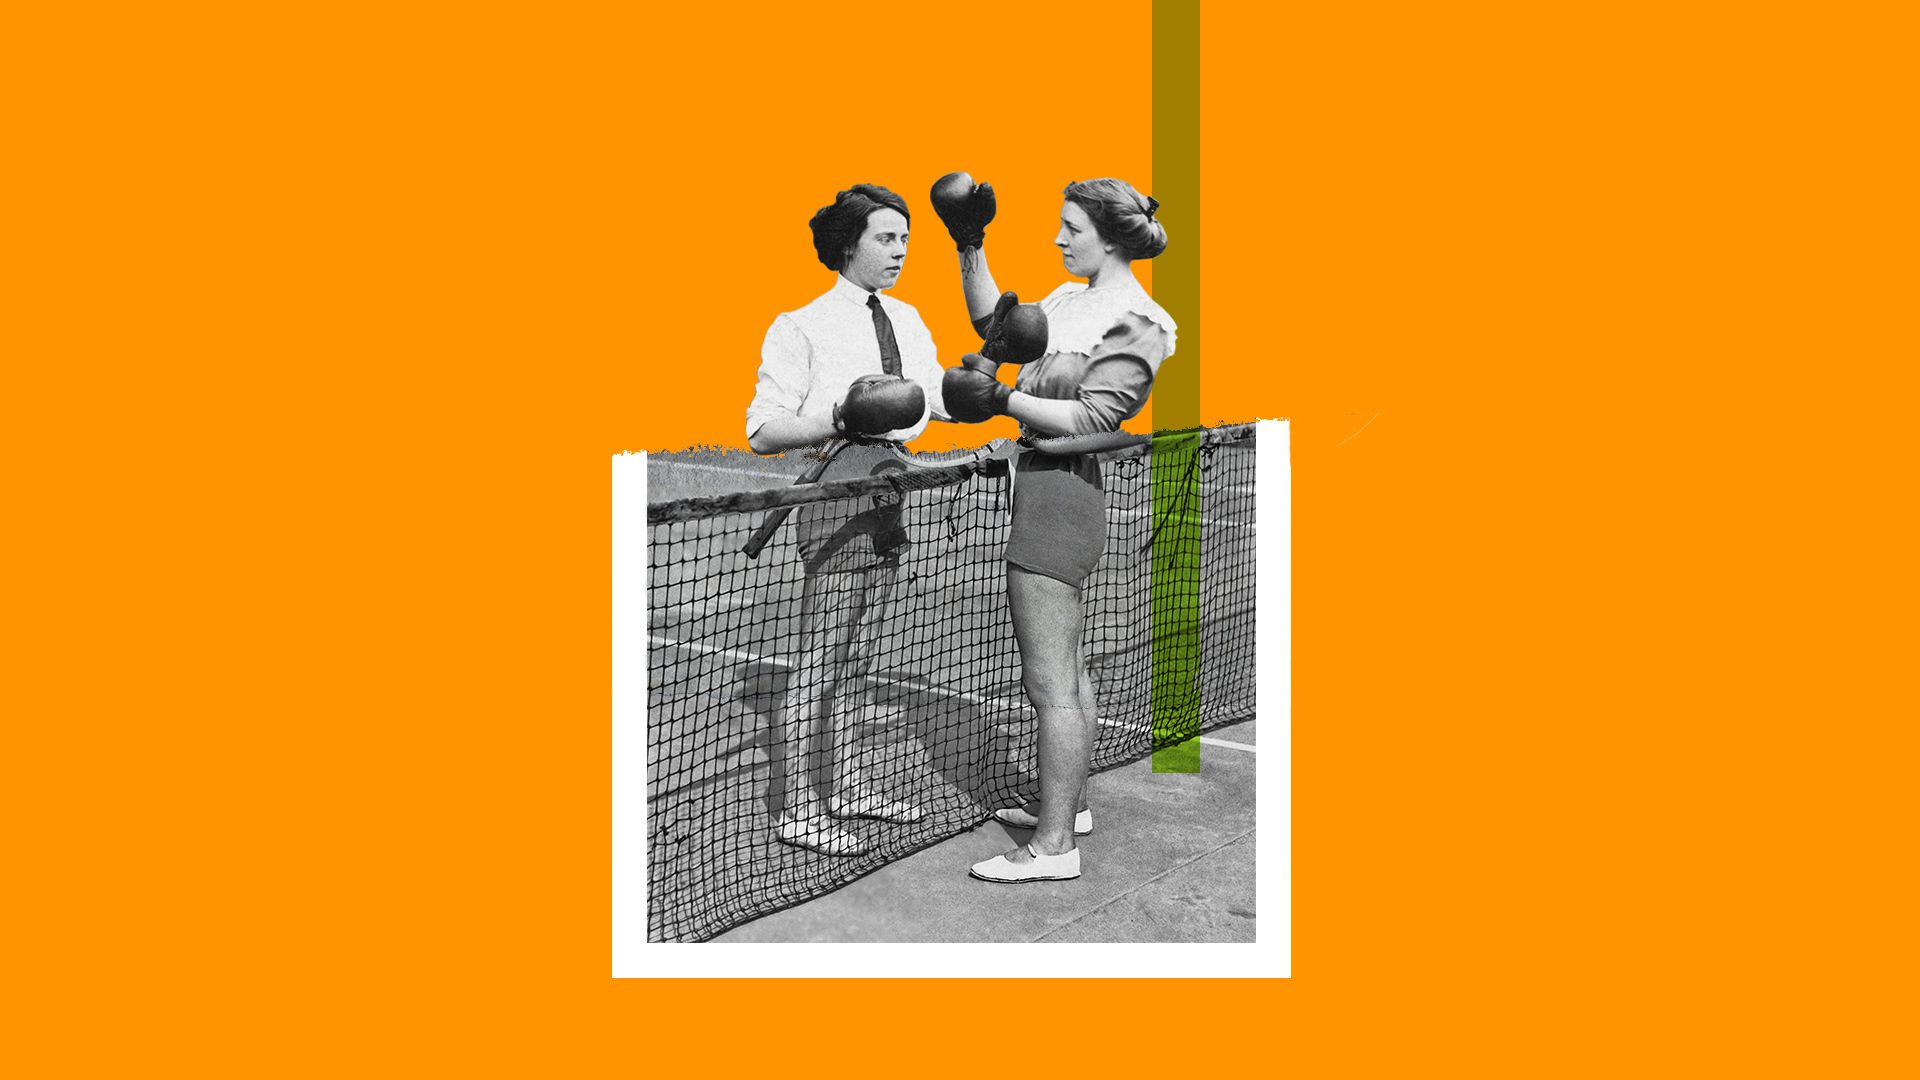 Collage illustration of two historical photos of women playing tennis and learning boxing